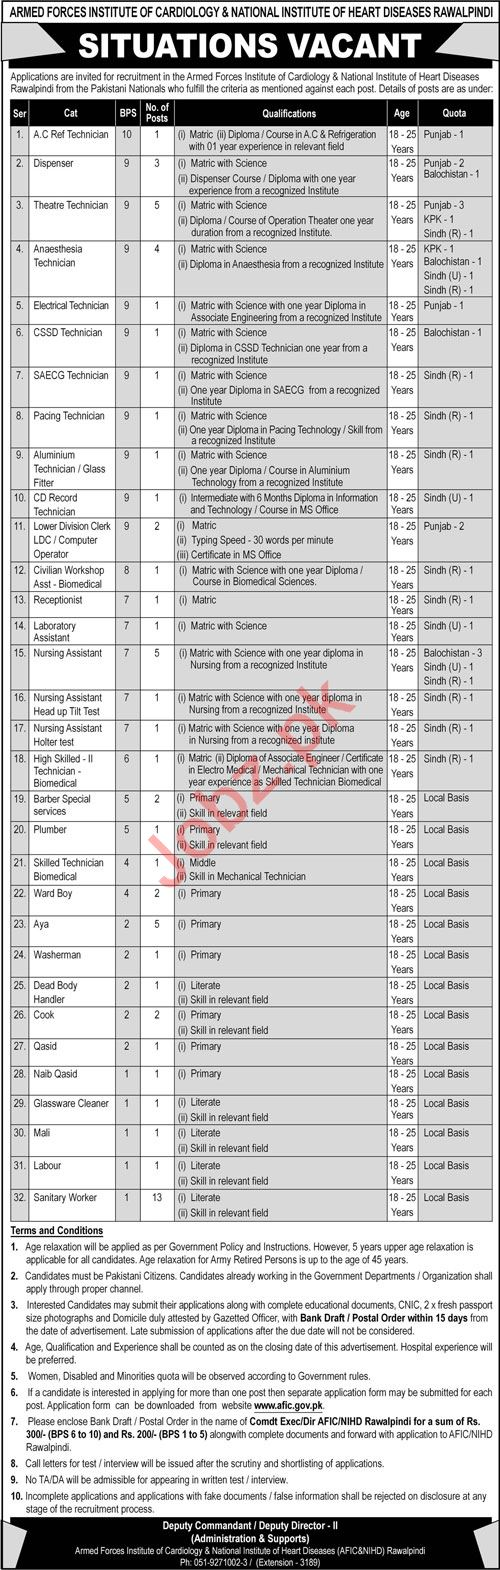 AFIC NIHD Armed Forces Institute of Cardiology Jobs 2021